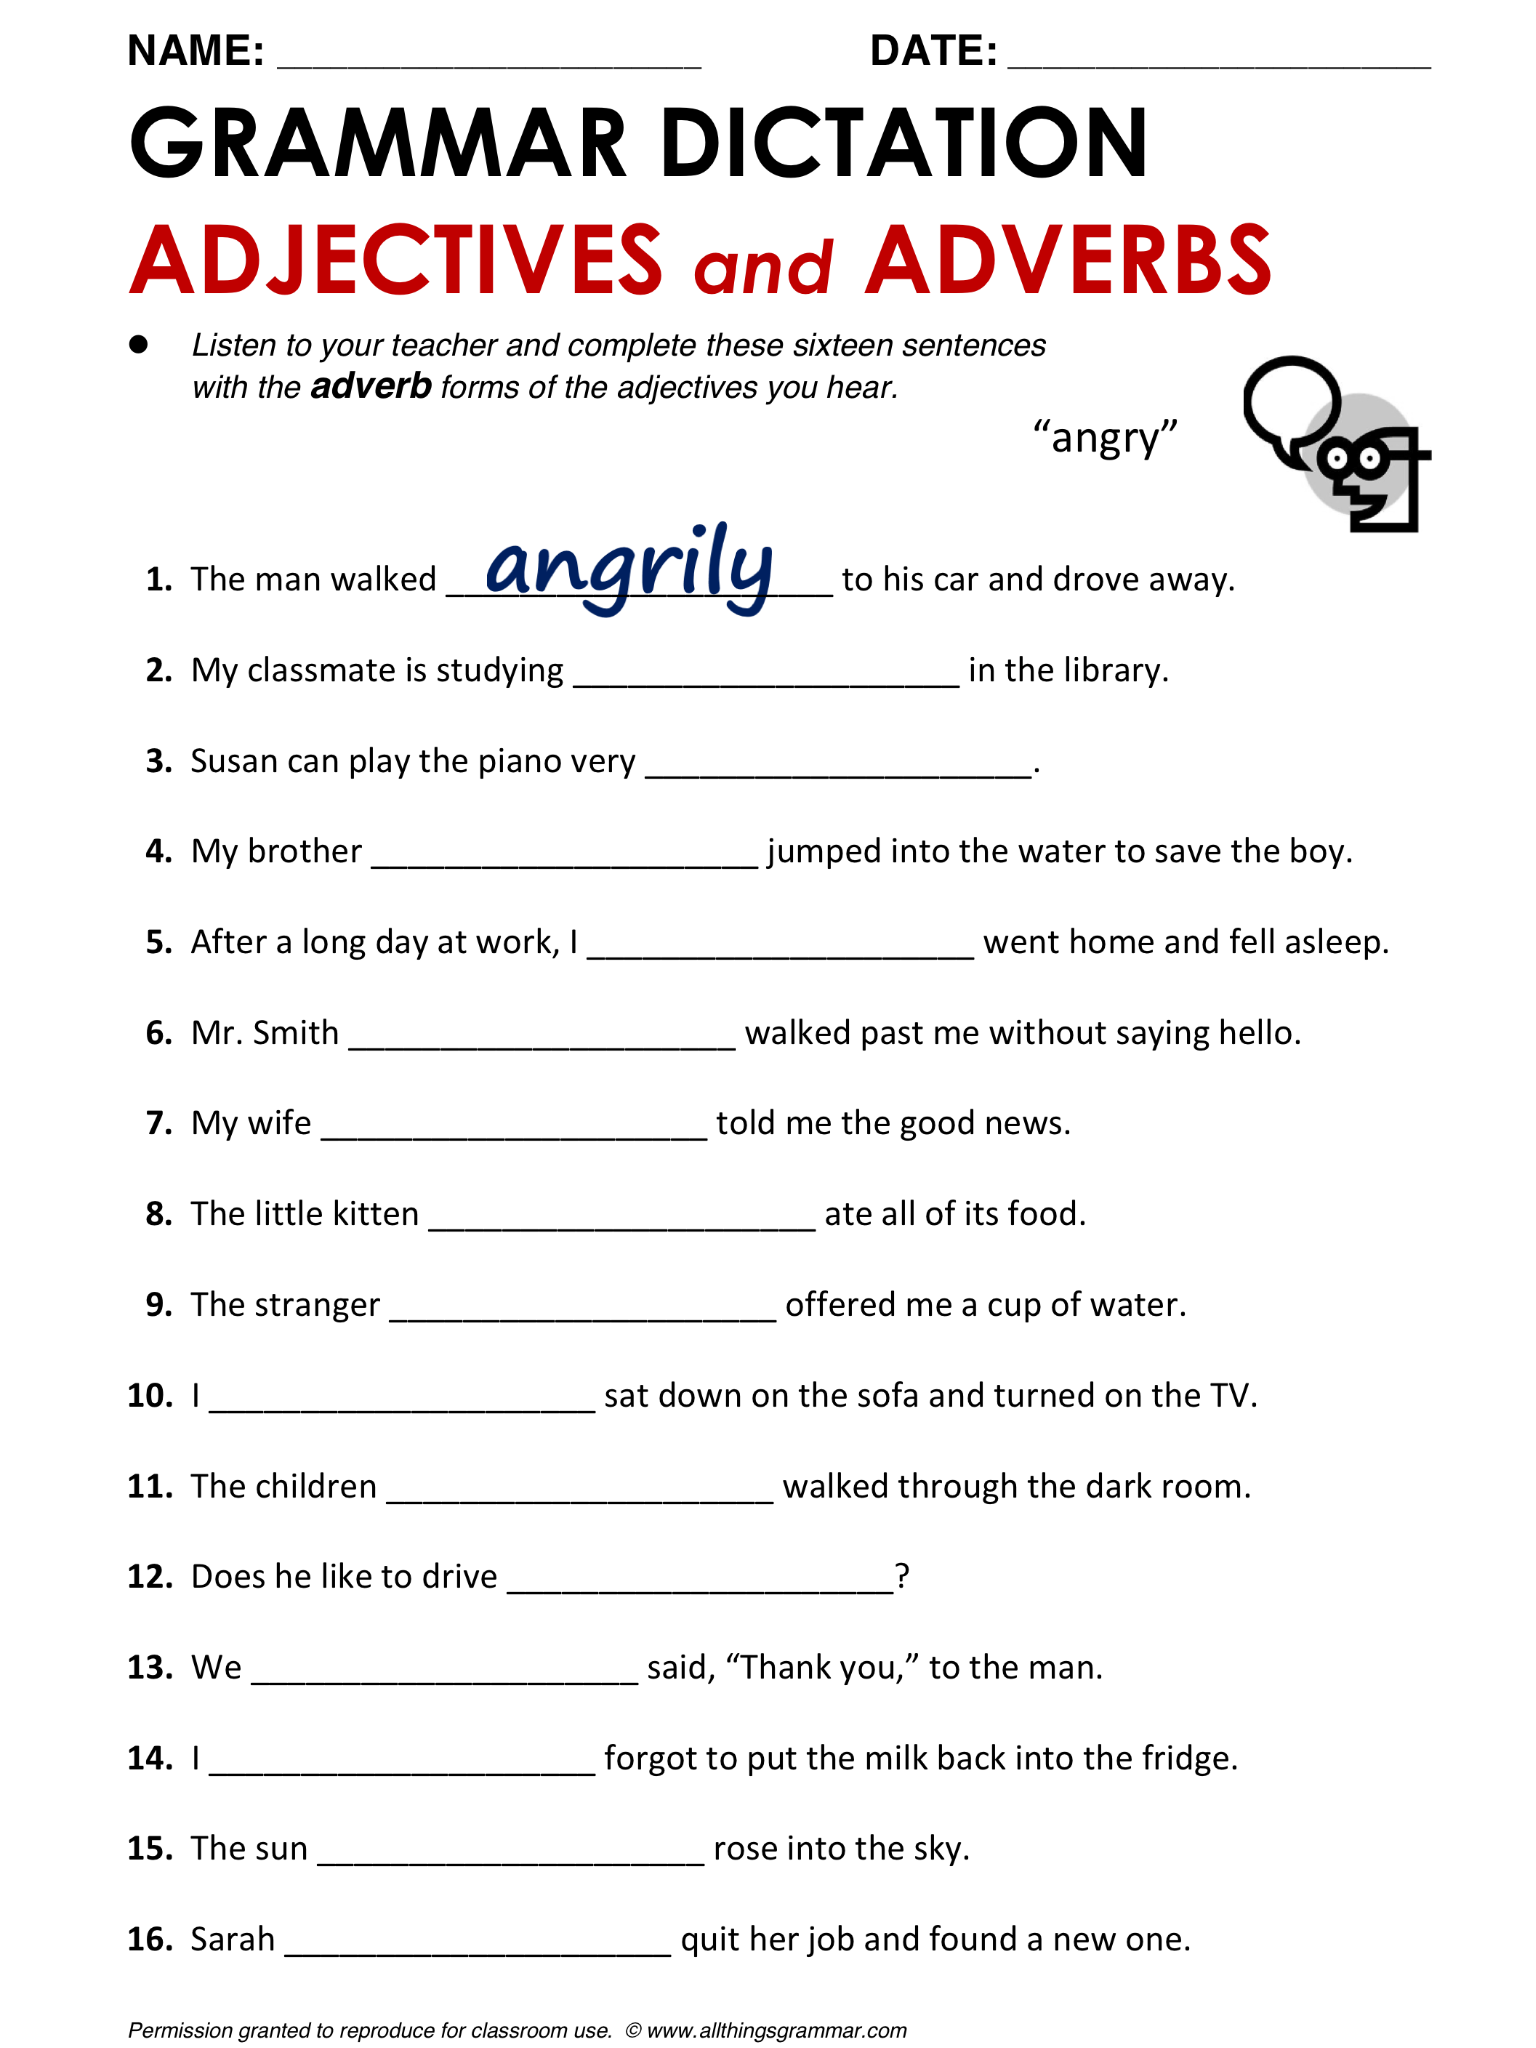 Worksheet On Adjectives Class 8